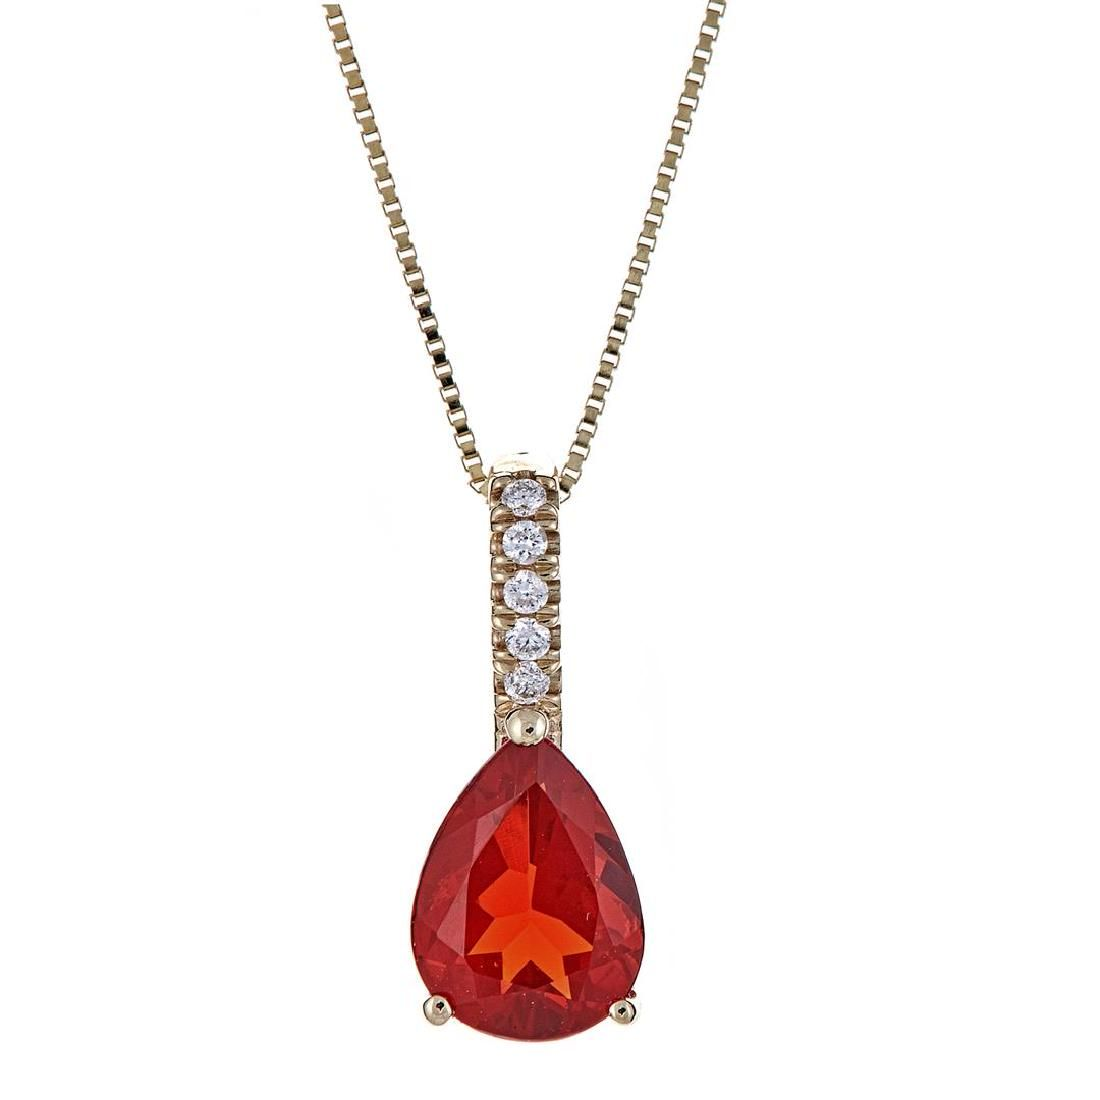 0.78 ctw Fire Opal and Diamond Pendant - 14KT Yellow